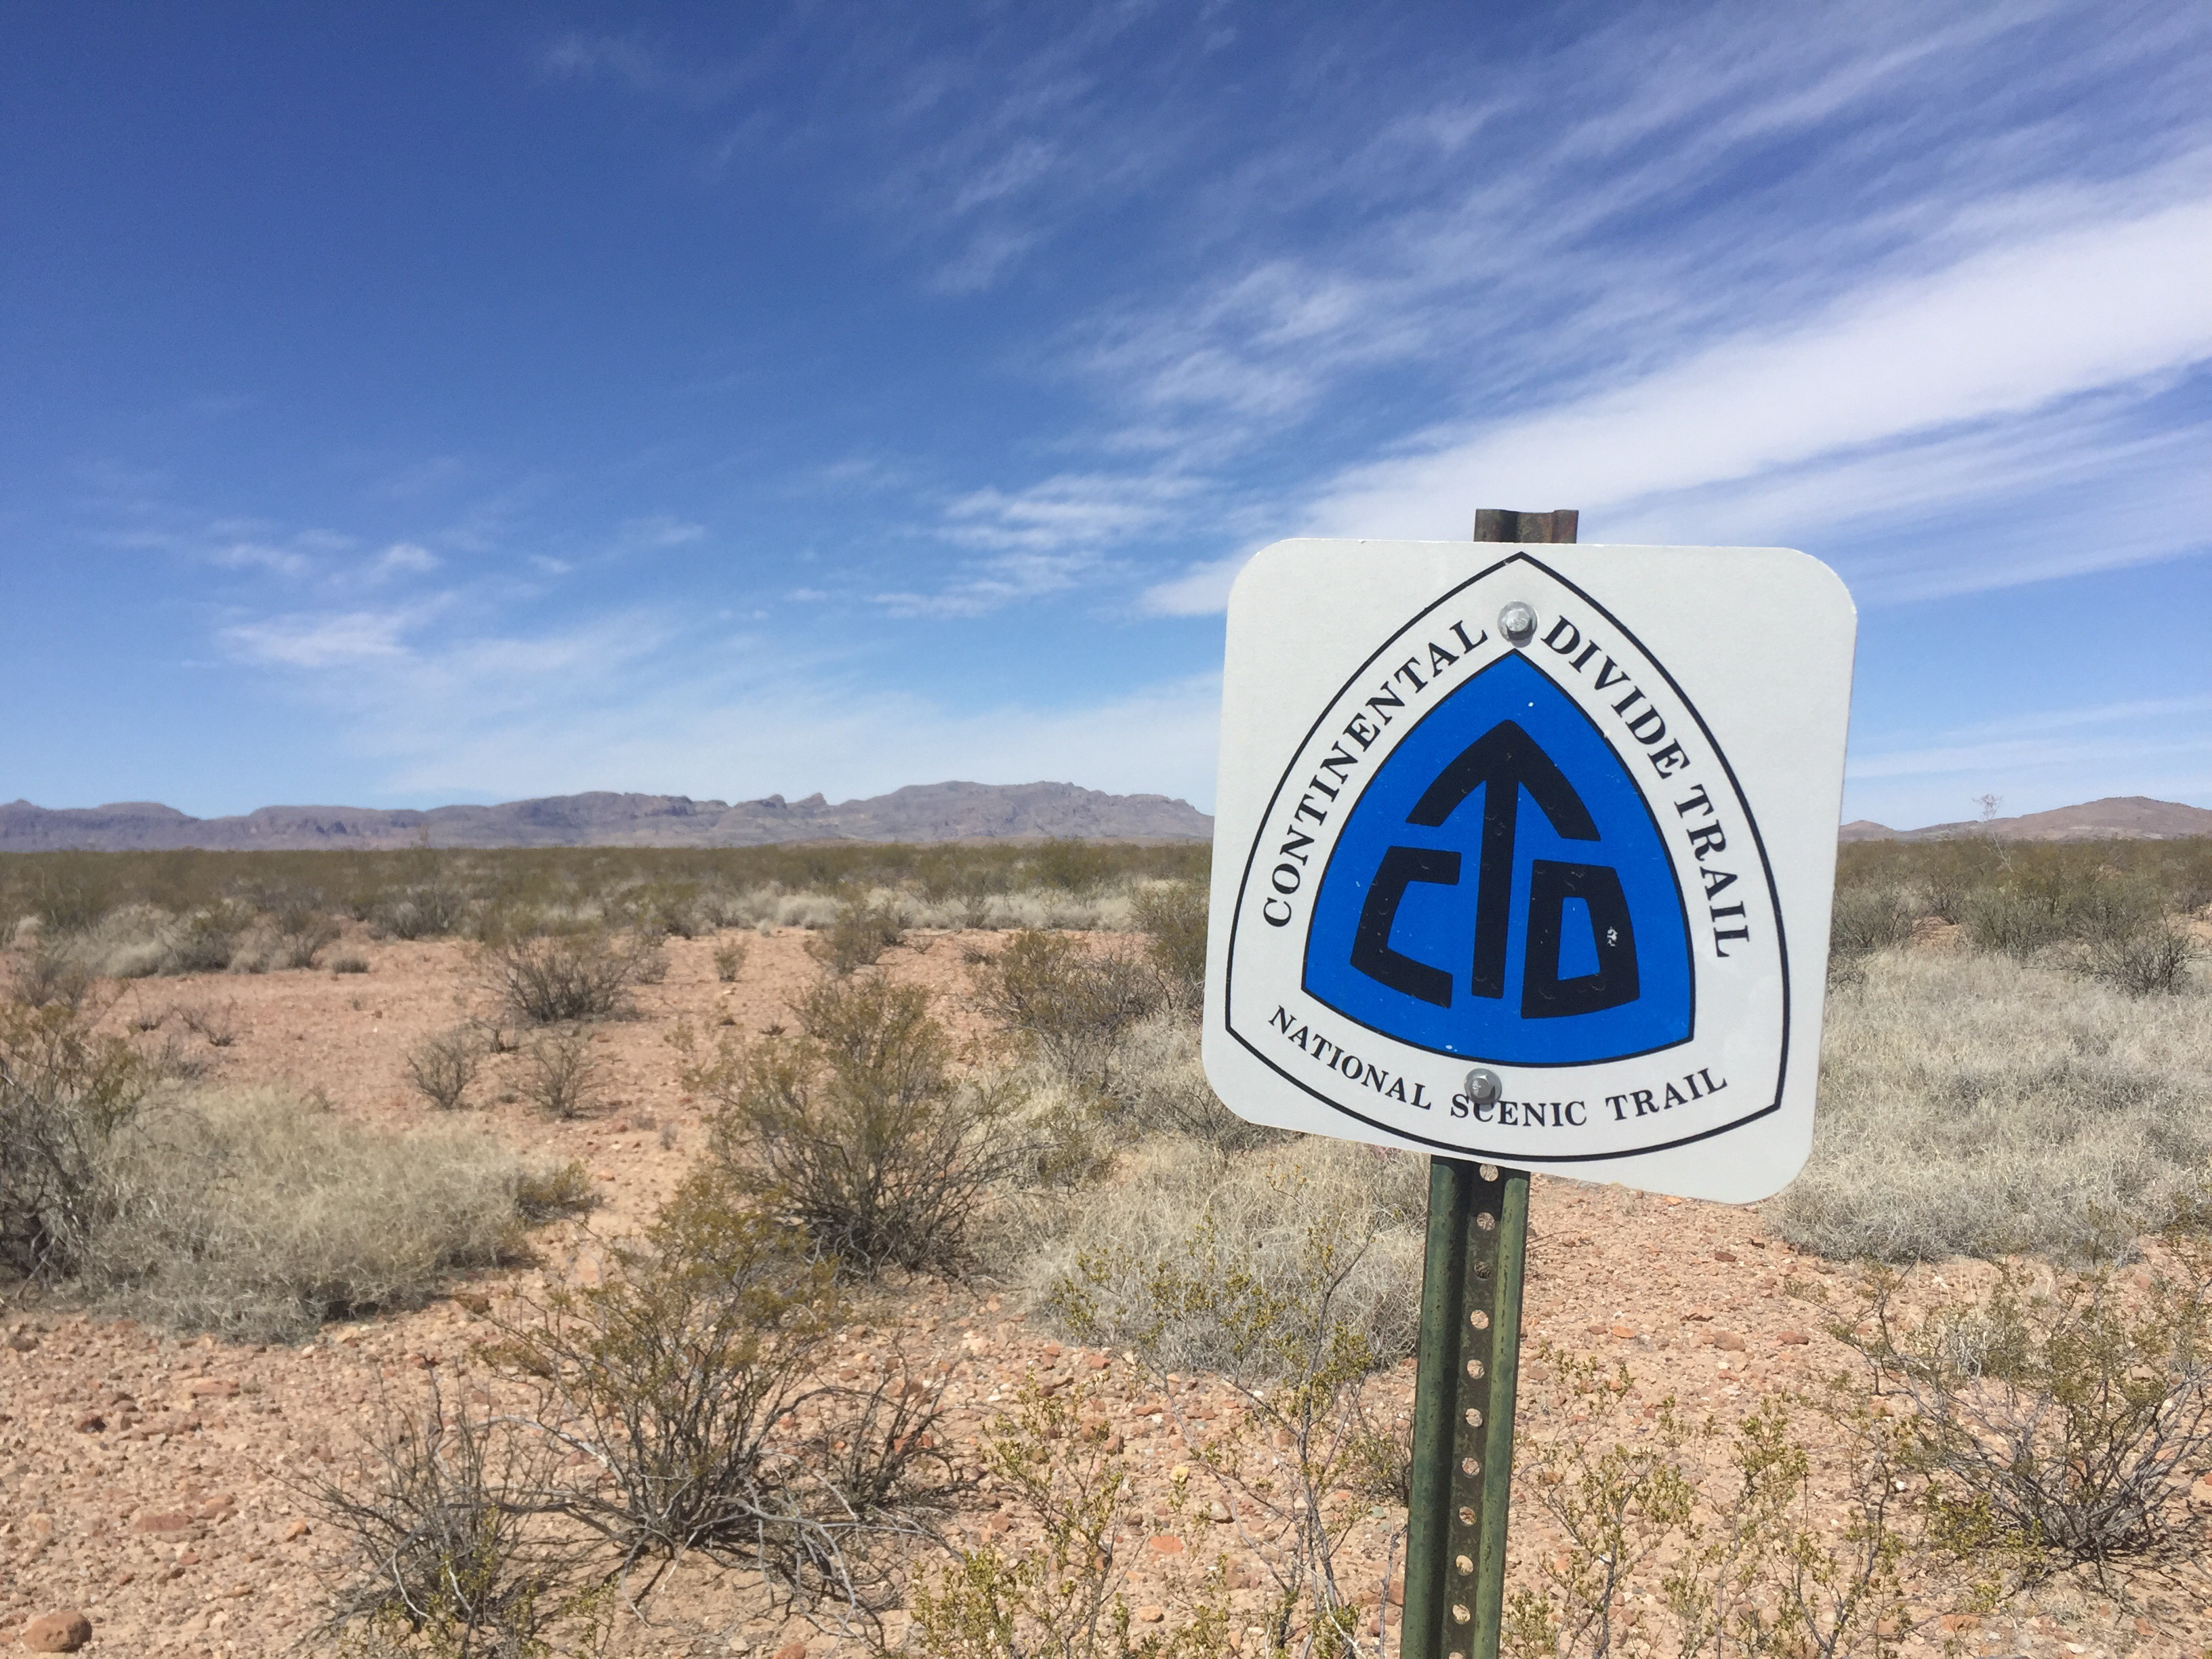 Updates from the Continental Divide Trail